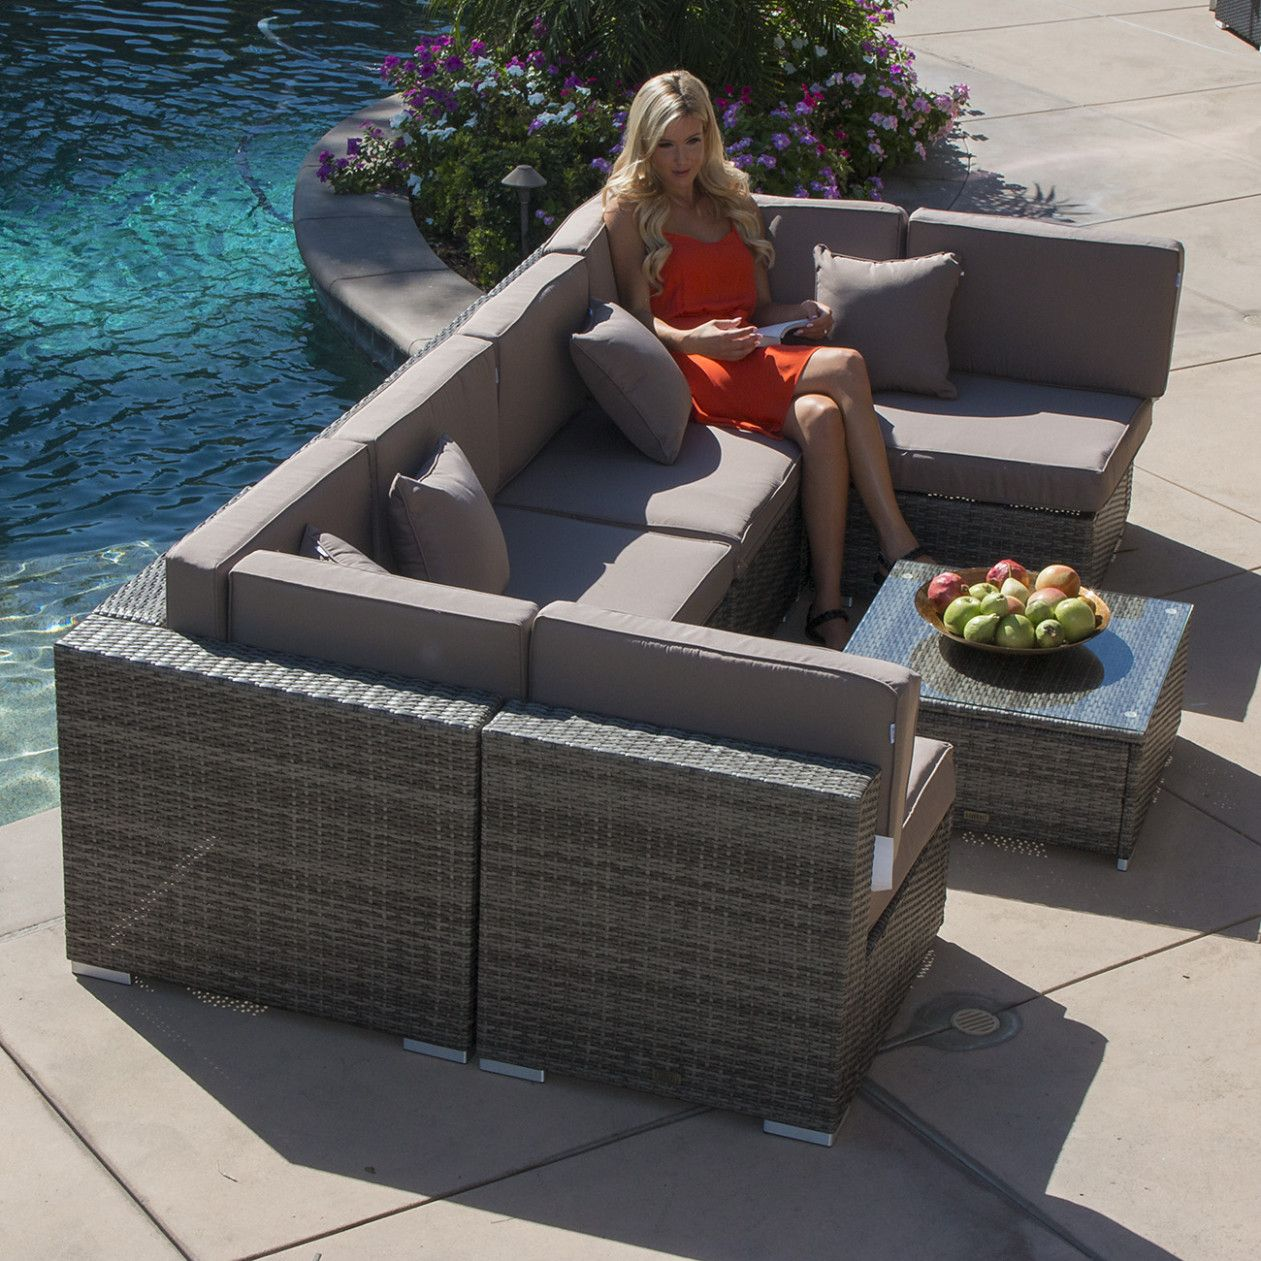 15 Things You Didnt Know About Aluminum Wicker Outdoor Furniture